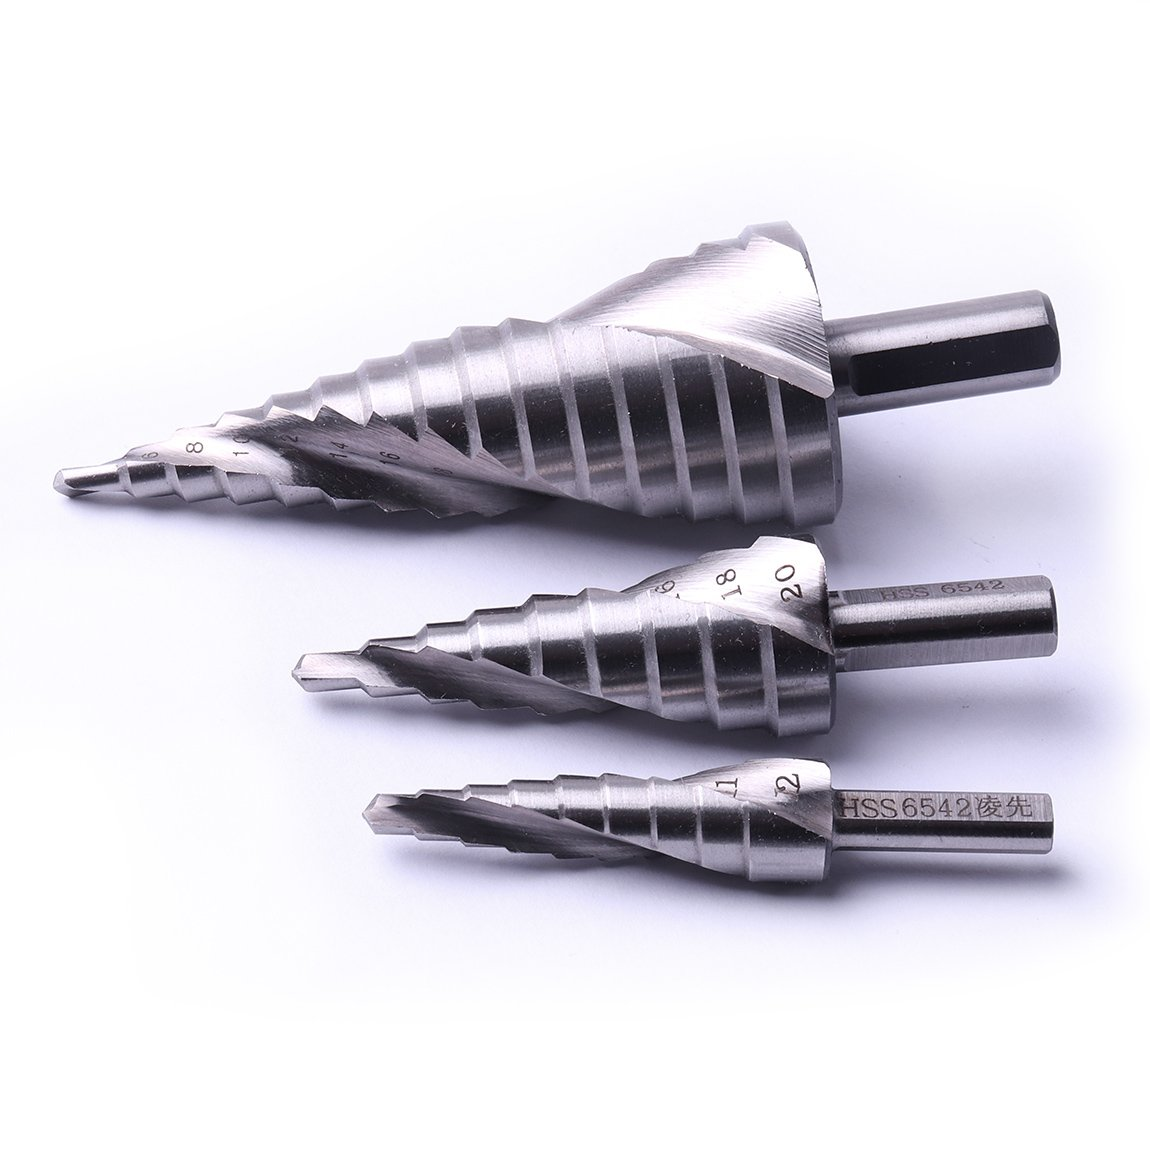 Atoplee HSS6542 Spiral Groove Step Drill Bit, 3 Pics, for Stainless Steel Cutting